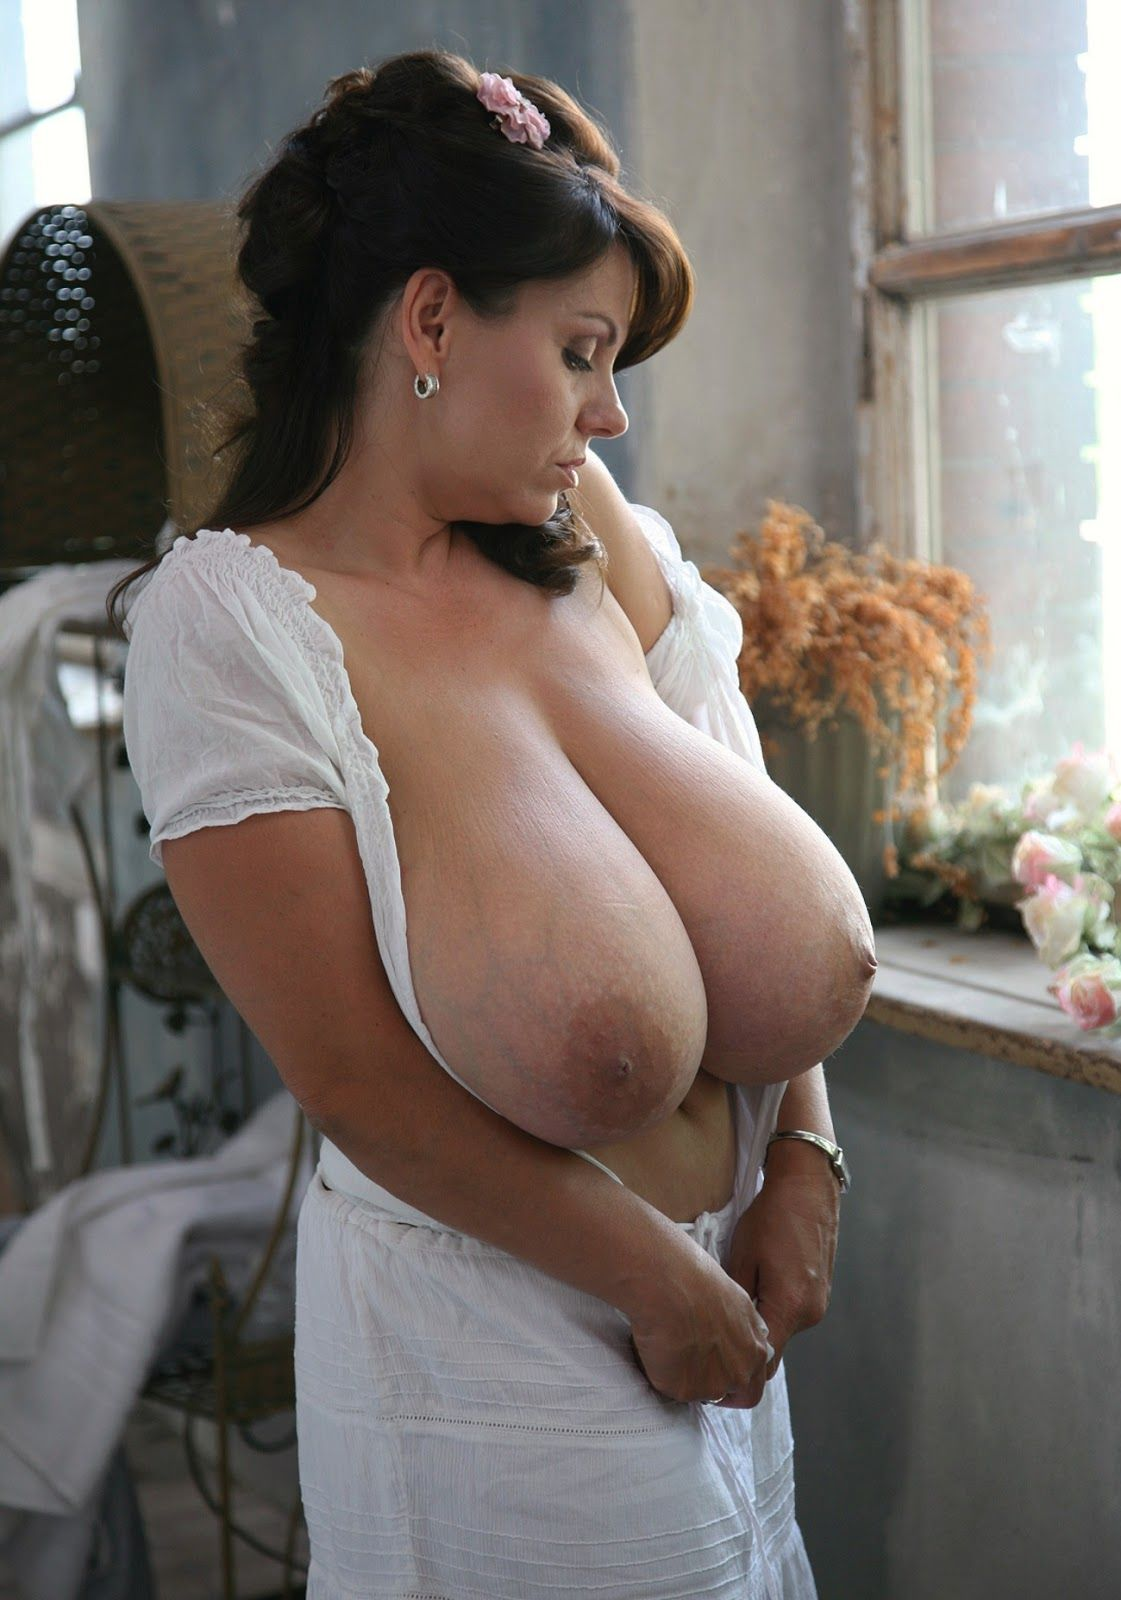 milena velba nude 1000+ images about Milena Velba on Pinterest | Sexy, Posts and White  lingerie